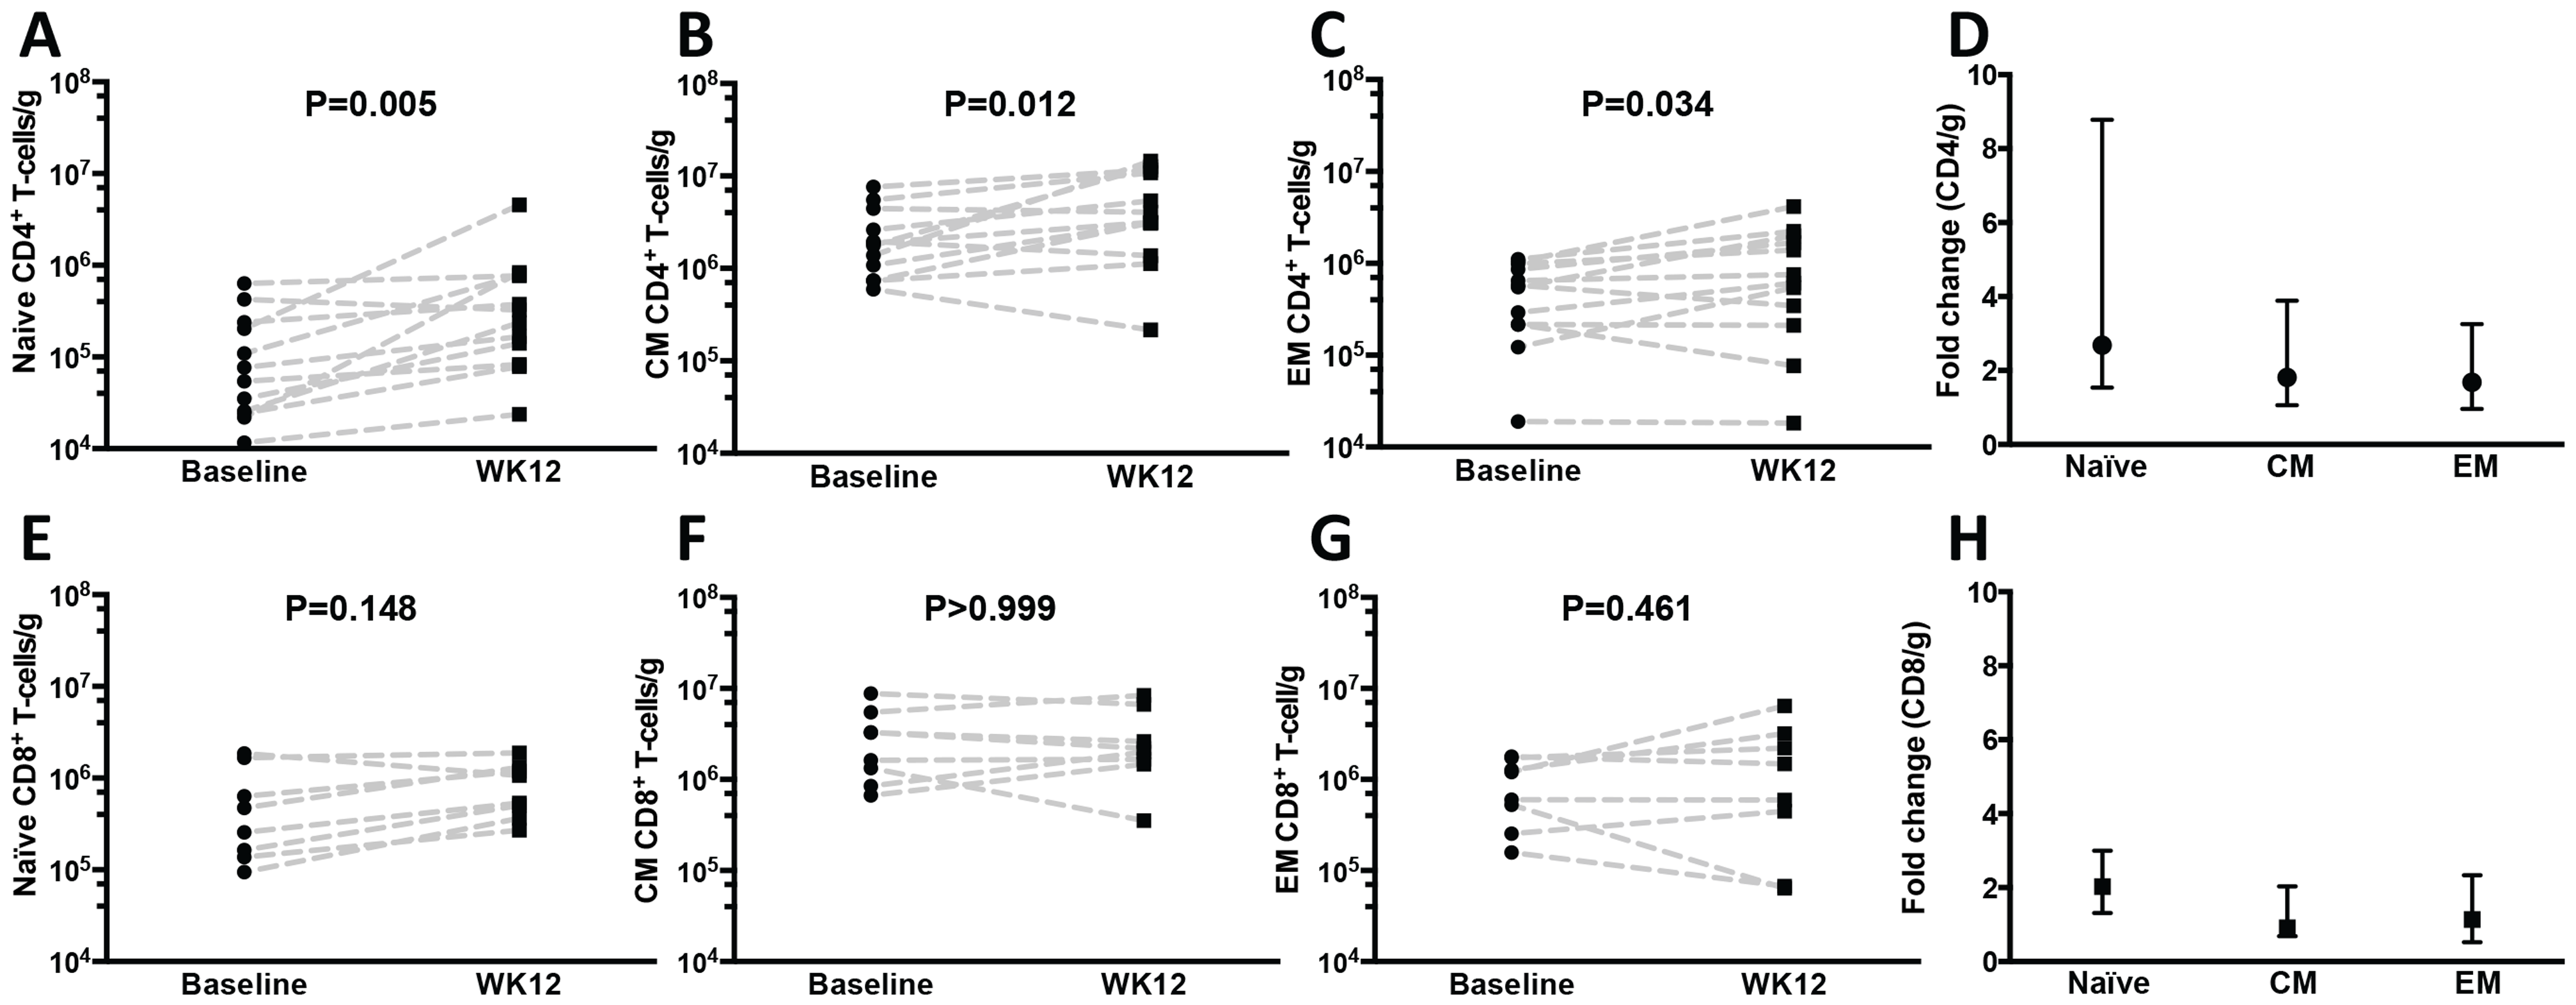 Naïve, central and effector memory colonic mucosal CD4<sup>+</sup> T cells increase after r-hIL-7 administration.